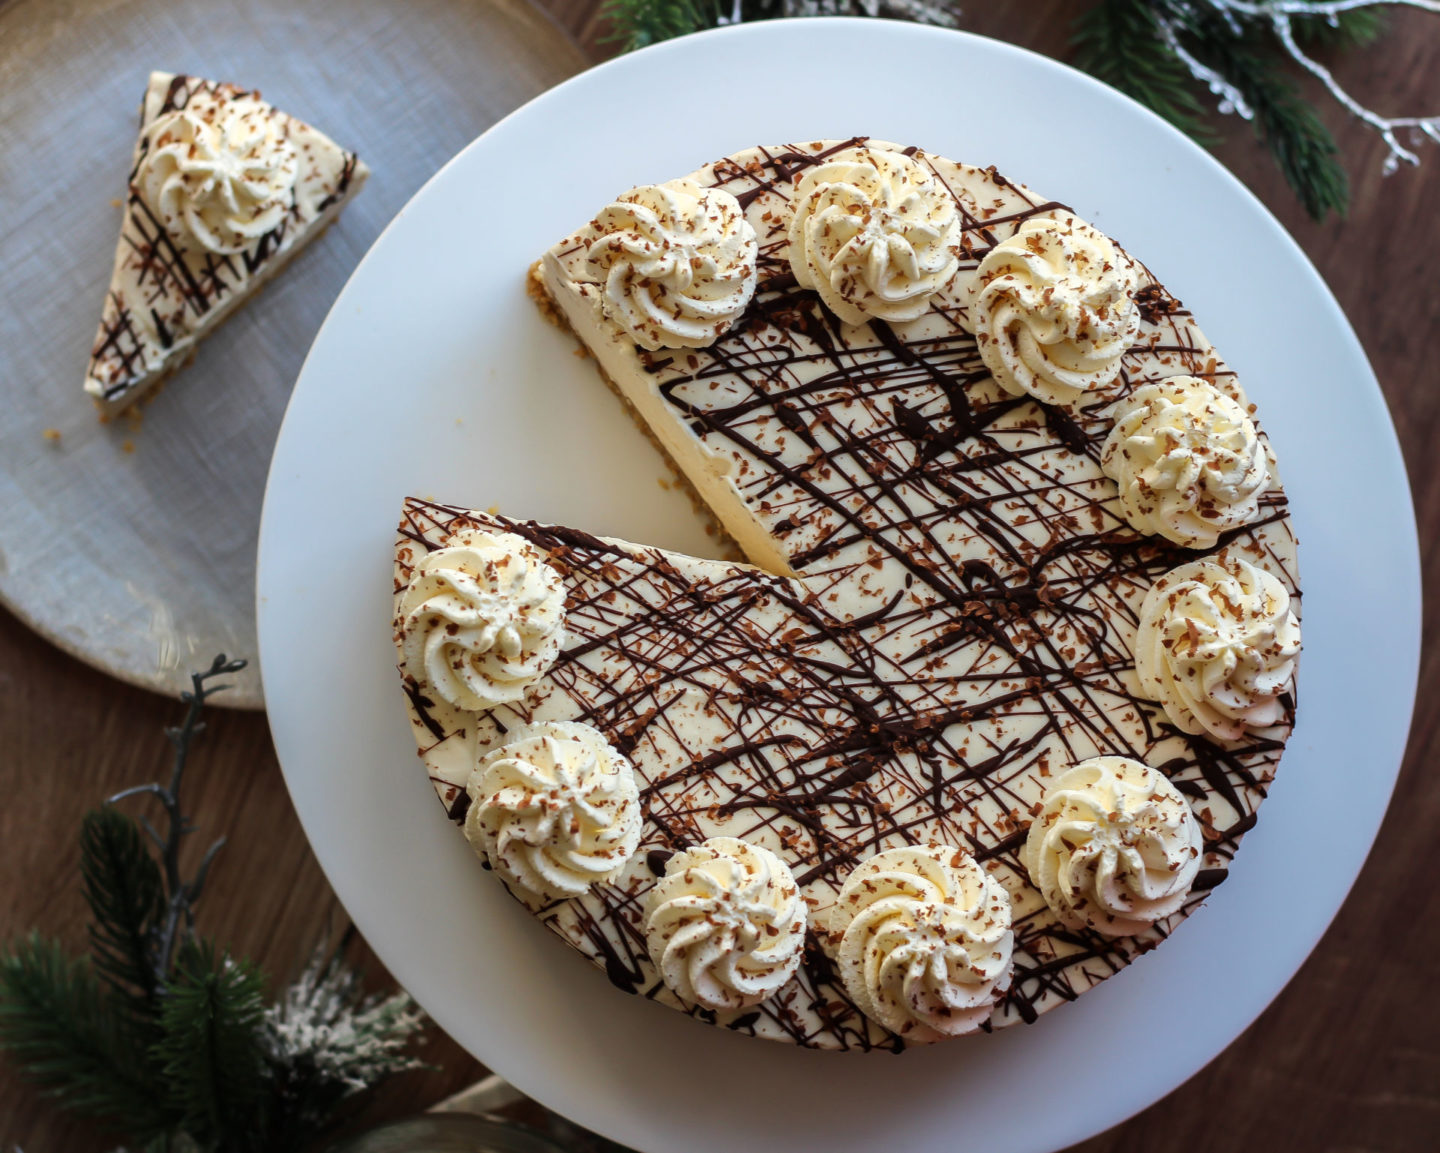 View from above of no-bake Baileys cheesecake with a slice taken from it